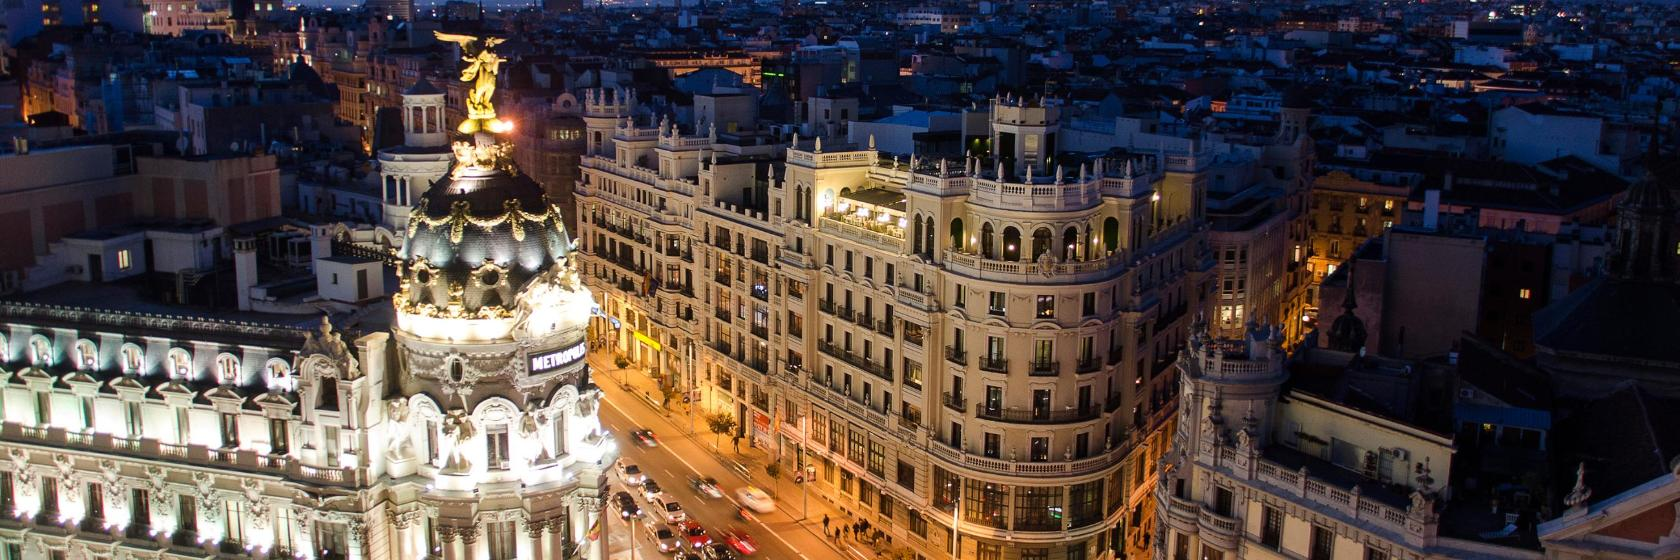 The 10 best hotels near Gran Via in Madrid, Spain